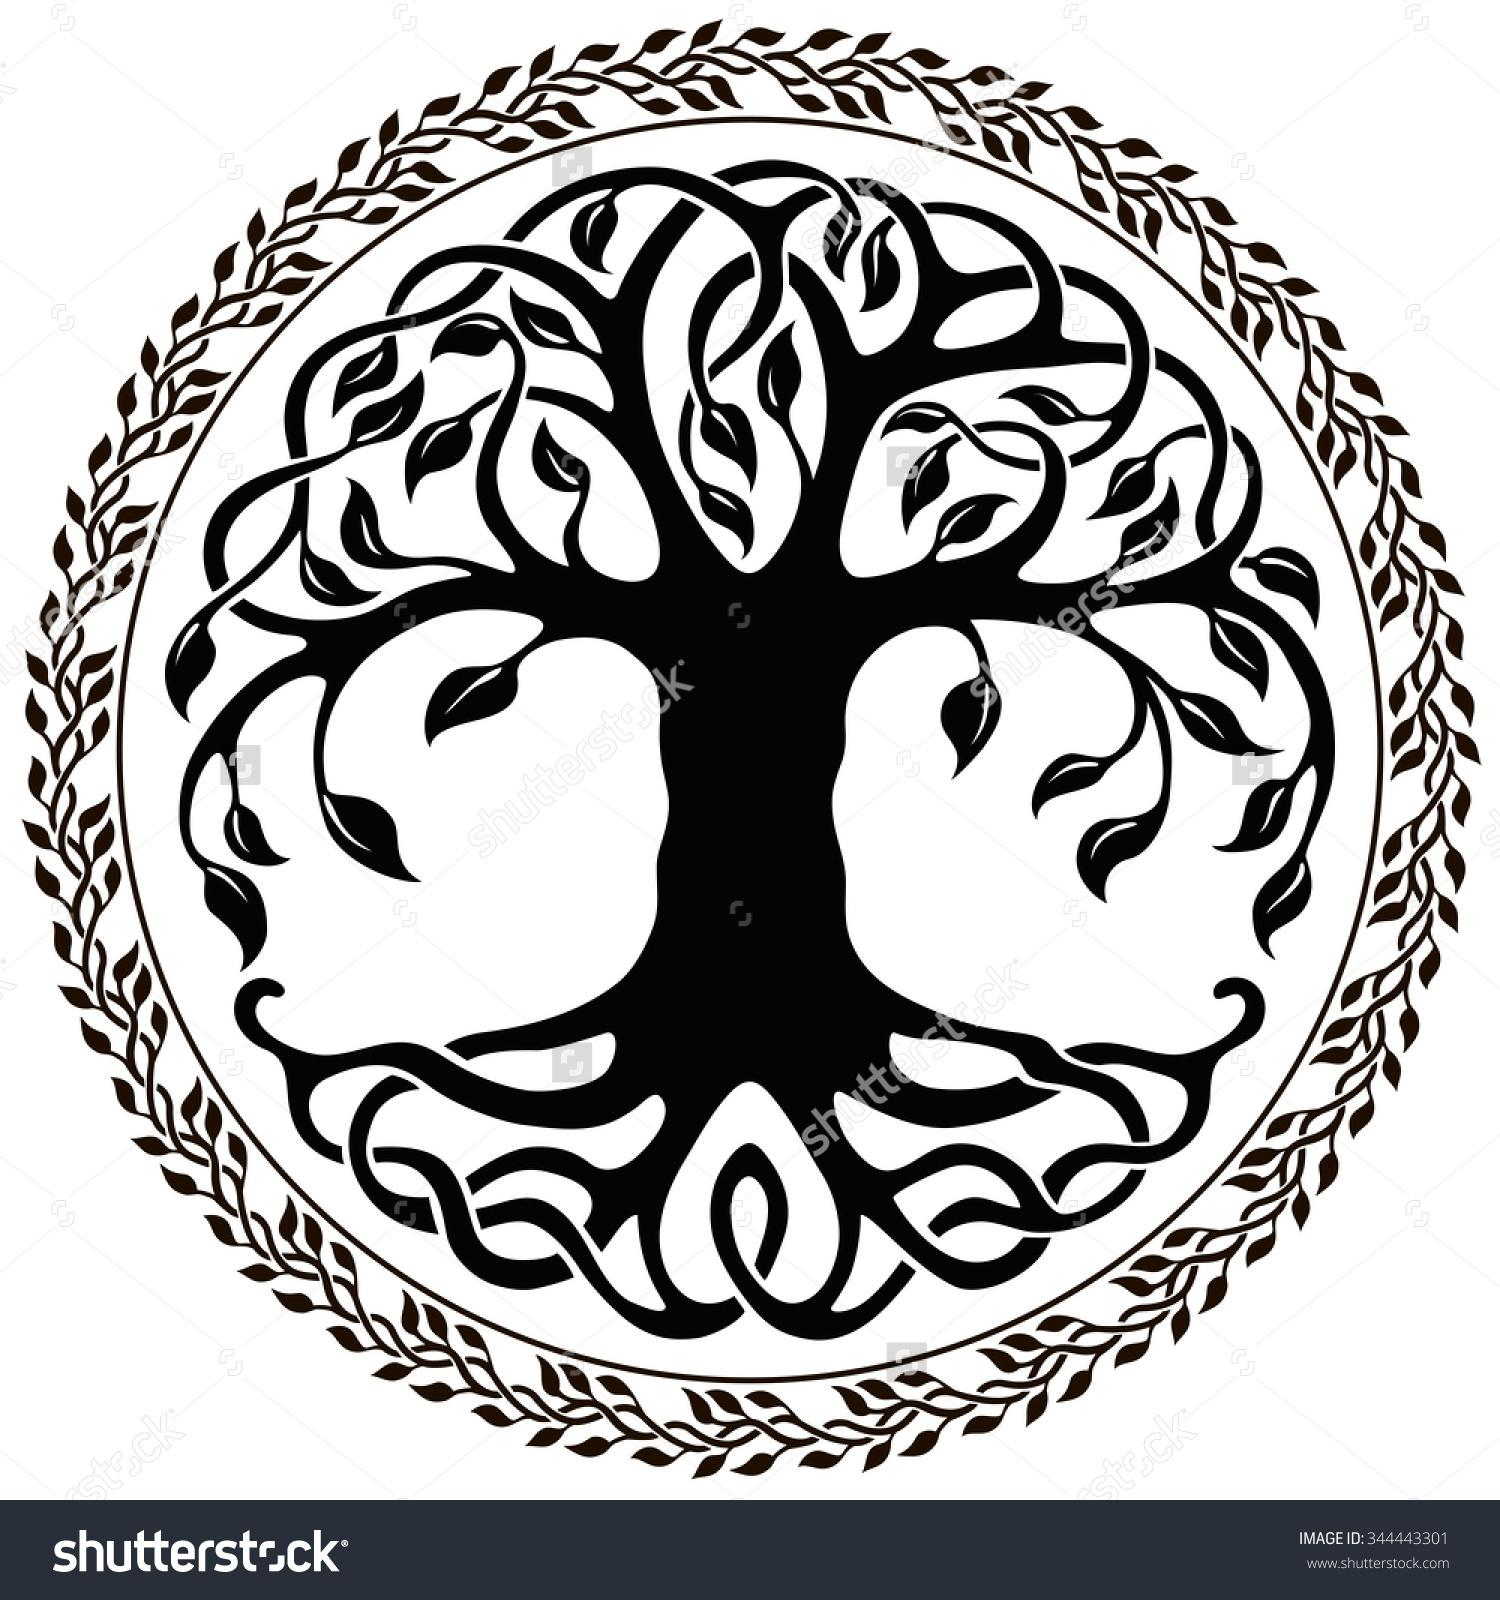 Celt clipart silhouette Best life clip tree photos